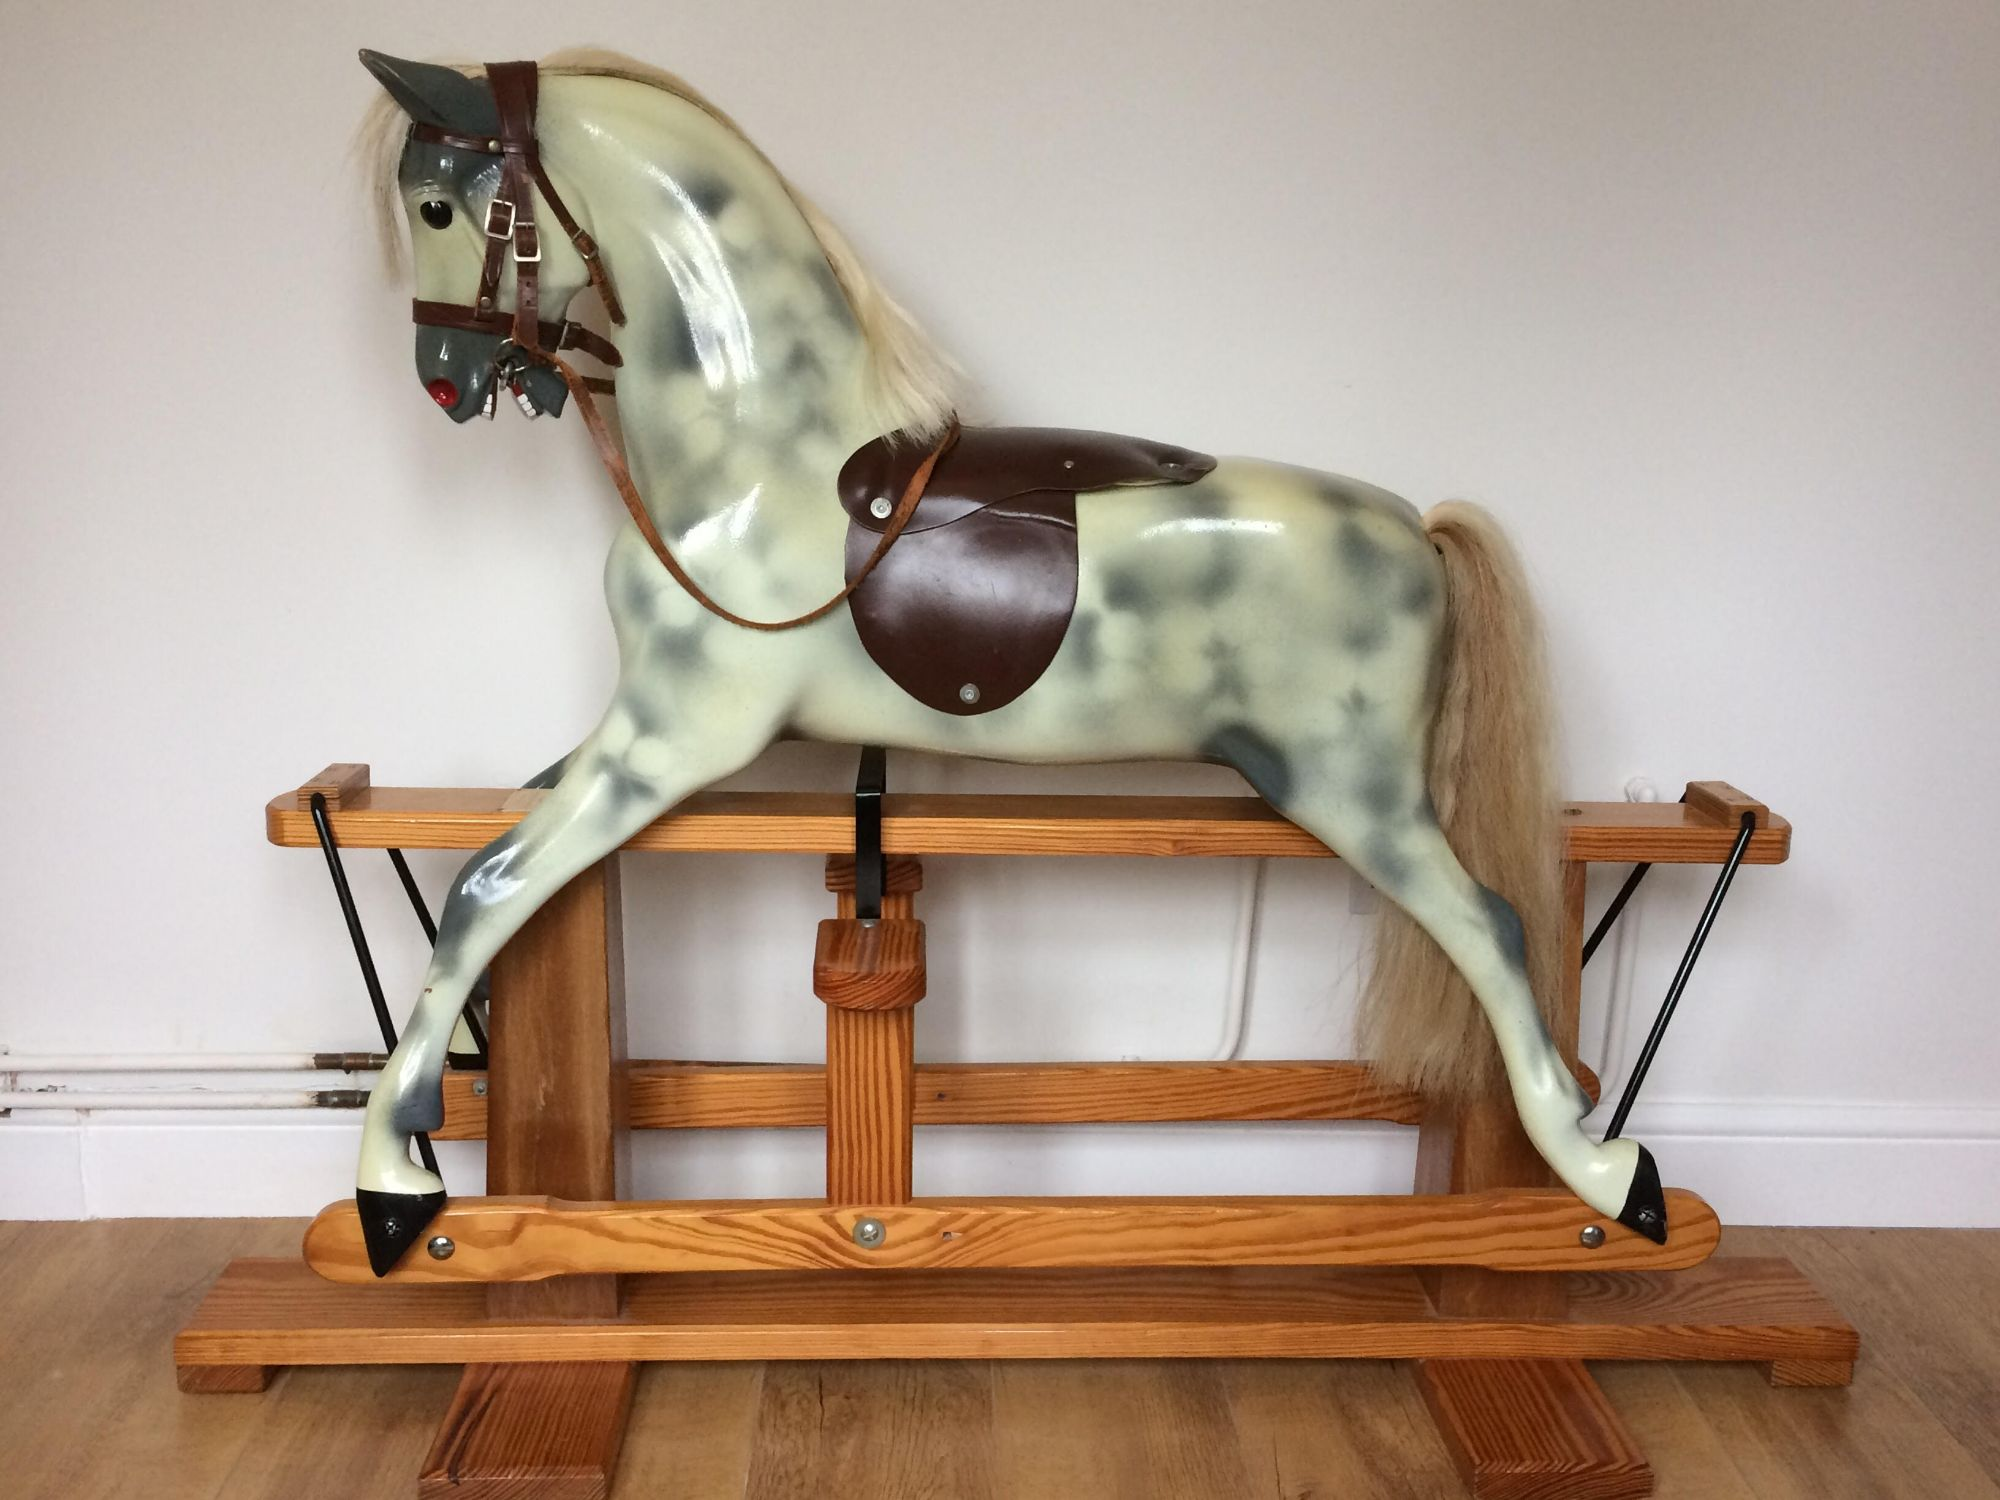 A Haddon rocking horse moulded from an F H Ayres Victorian model of horse in its original condition.